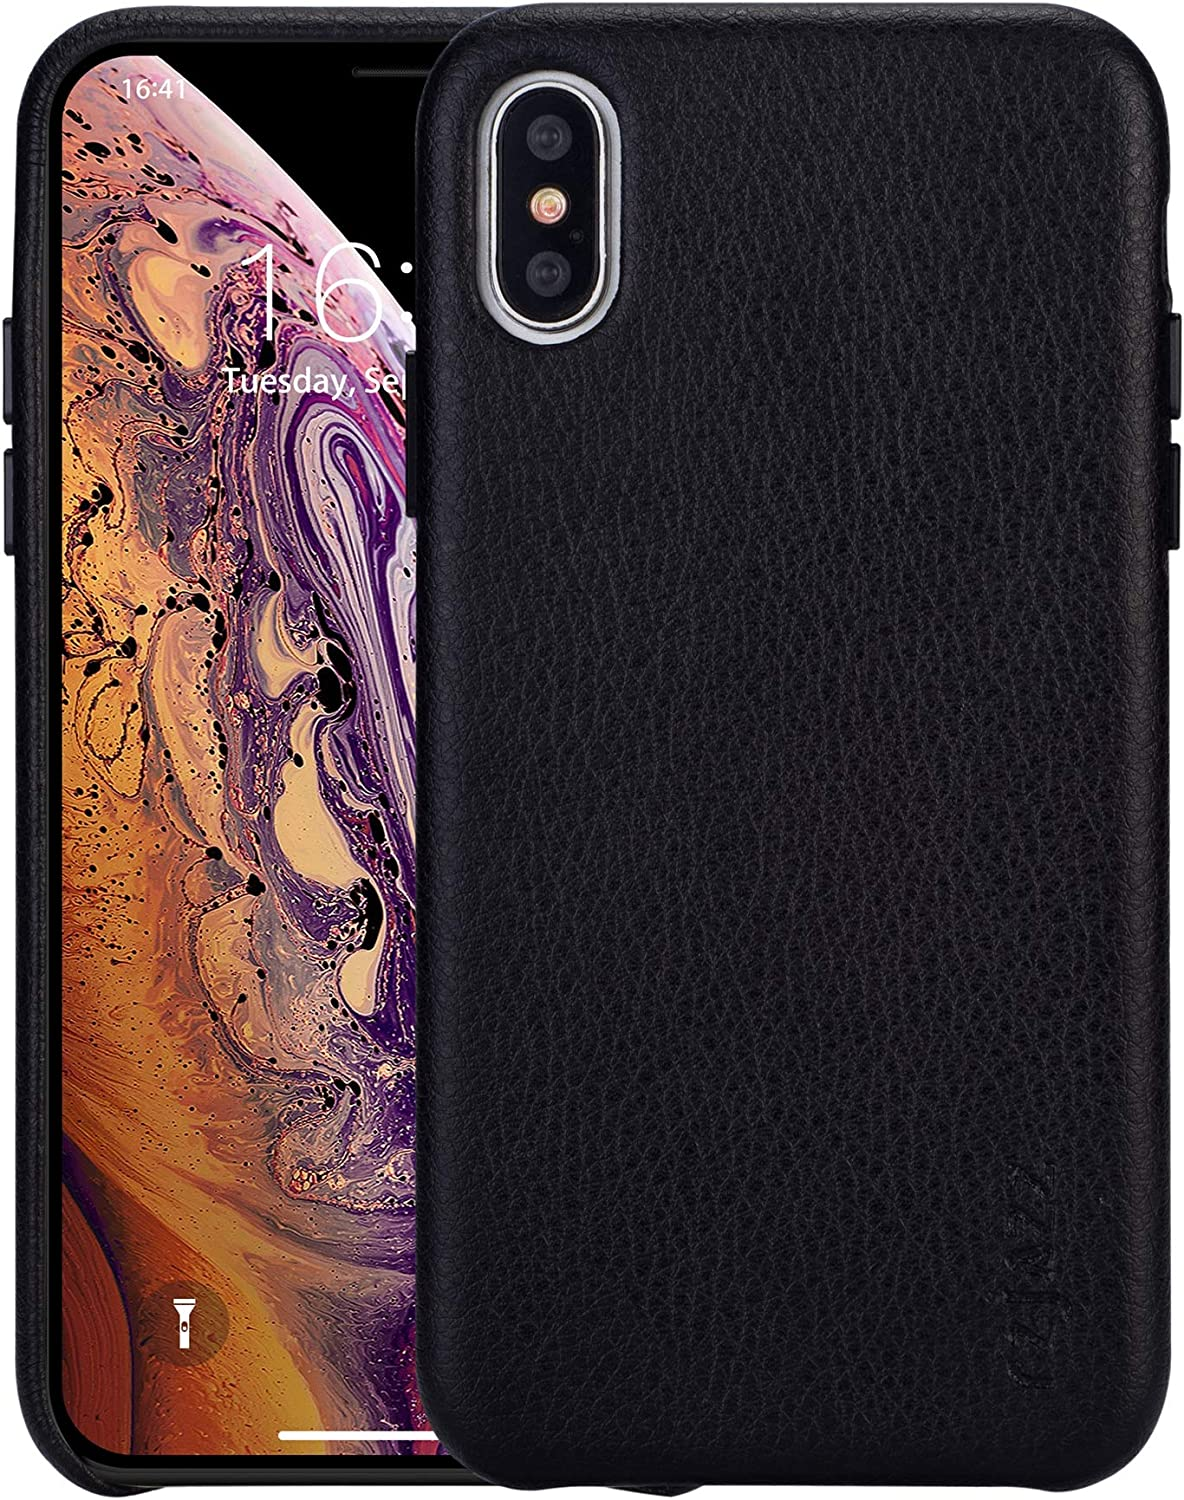 rejazz iPhone Xs max Case Anti-Scratch iPhone Xs max Cover Genuine Leather Apple iPhone Cases for iPhone Xs max (6.5 Inch)(Black)